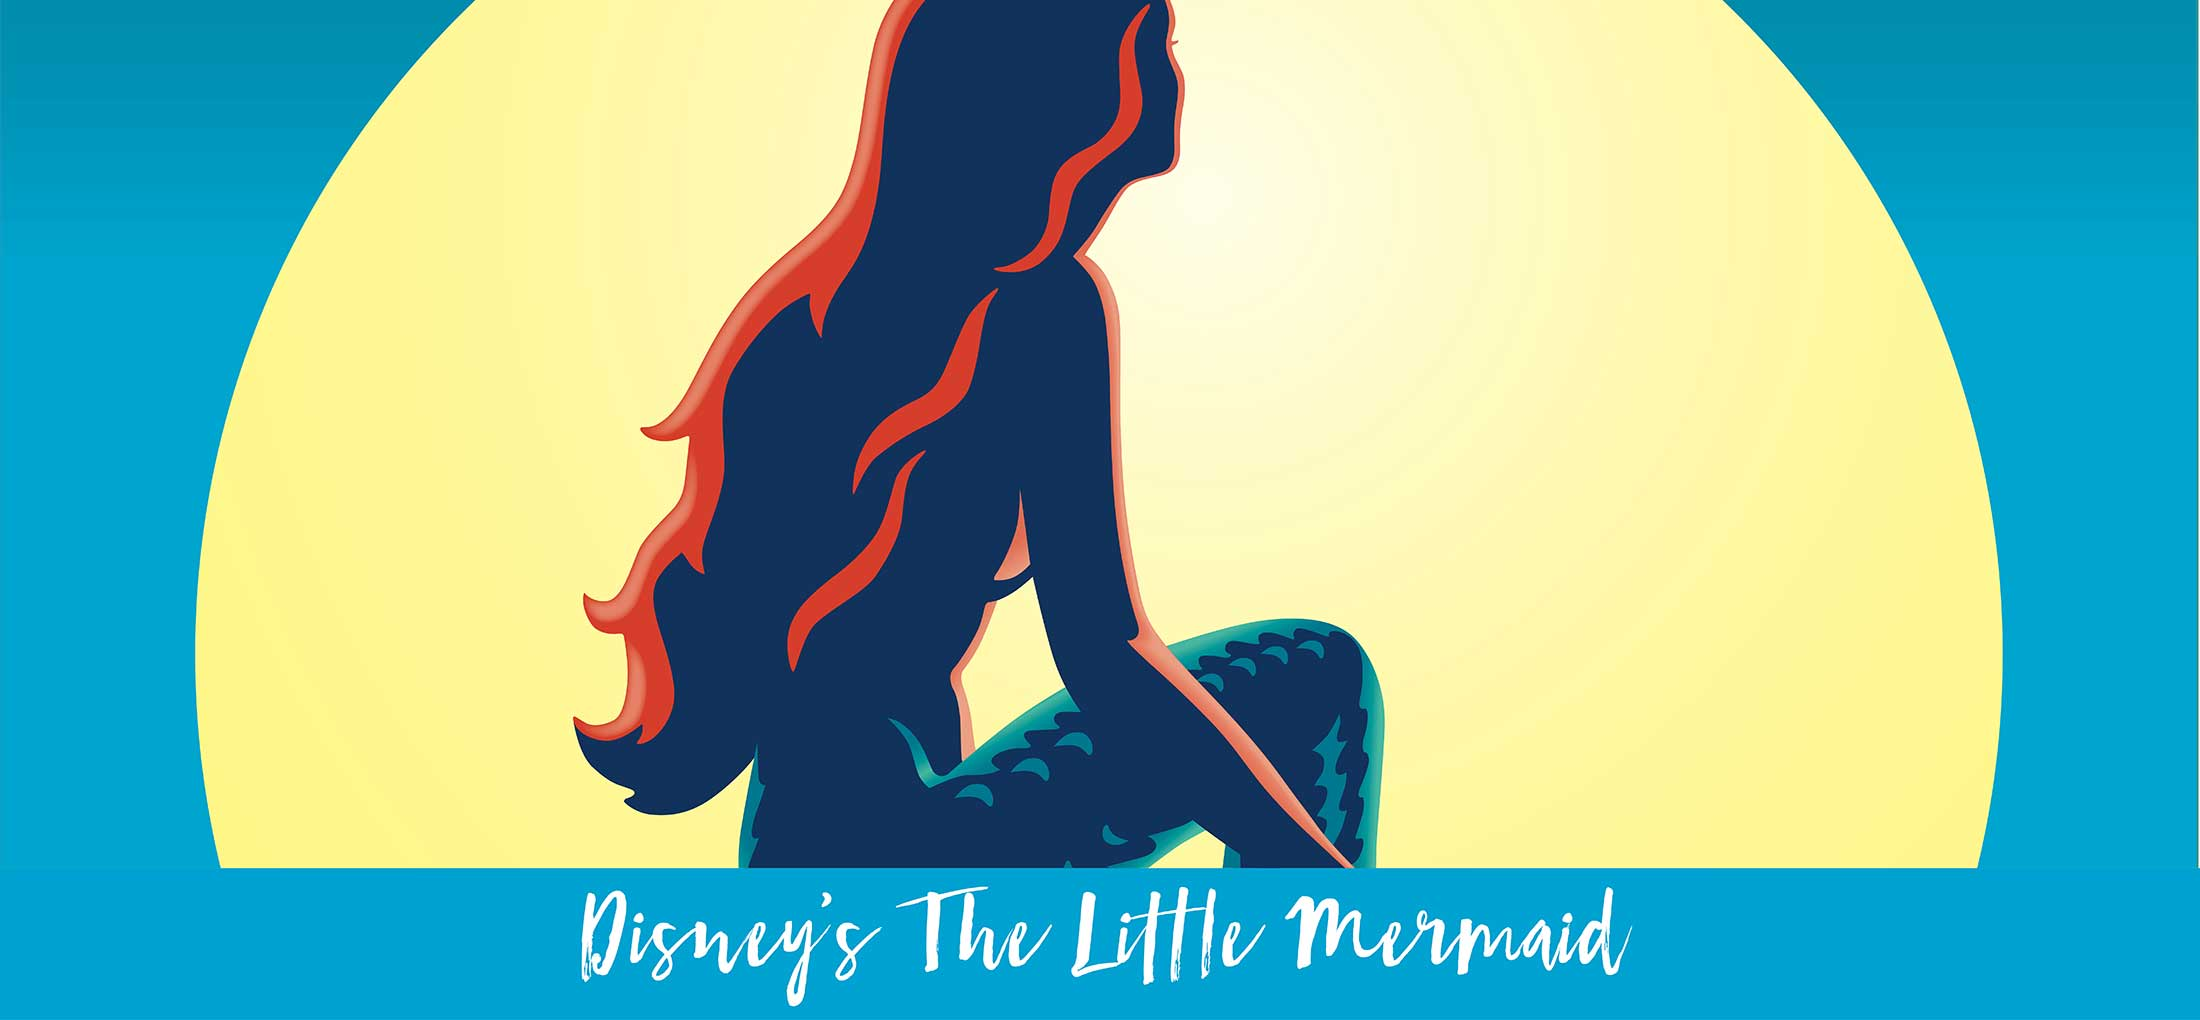 Disney's The Little Mermaid Musical charlton christian college